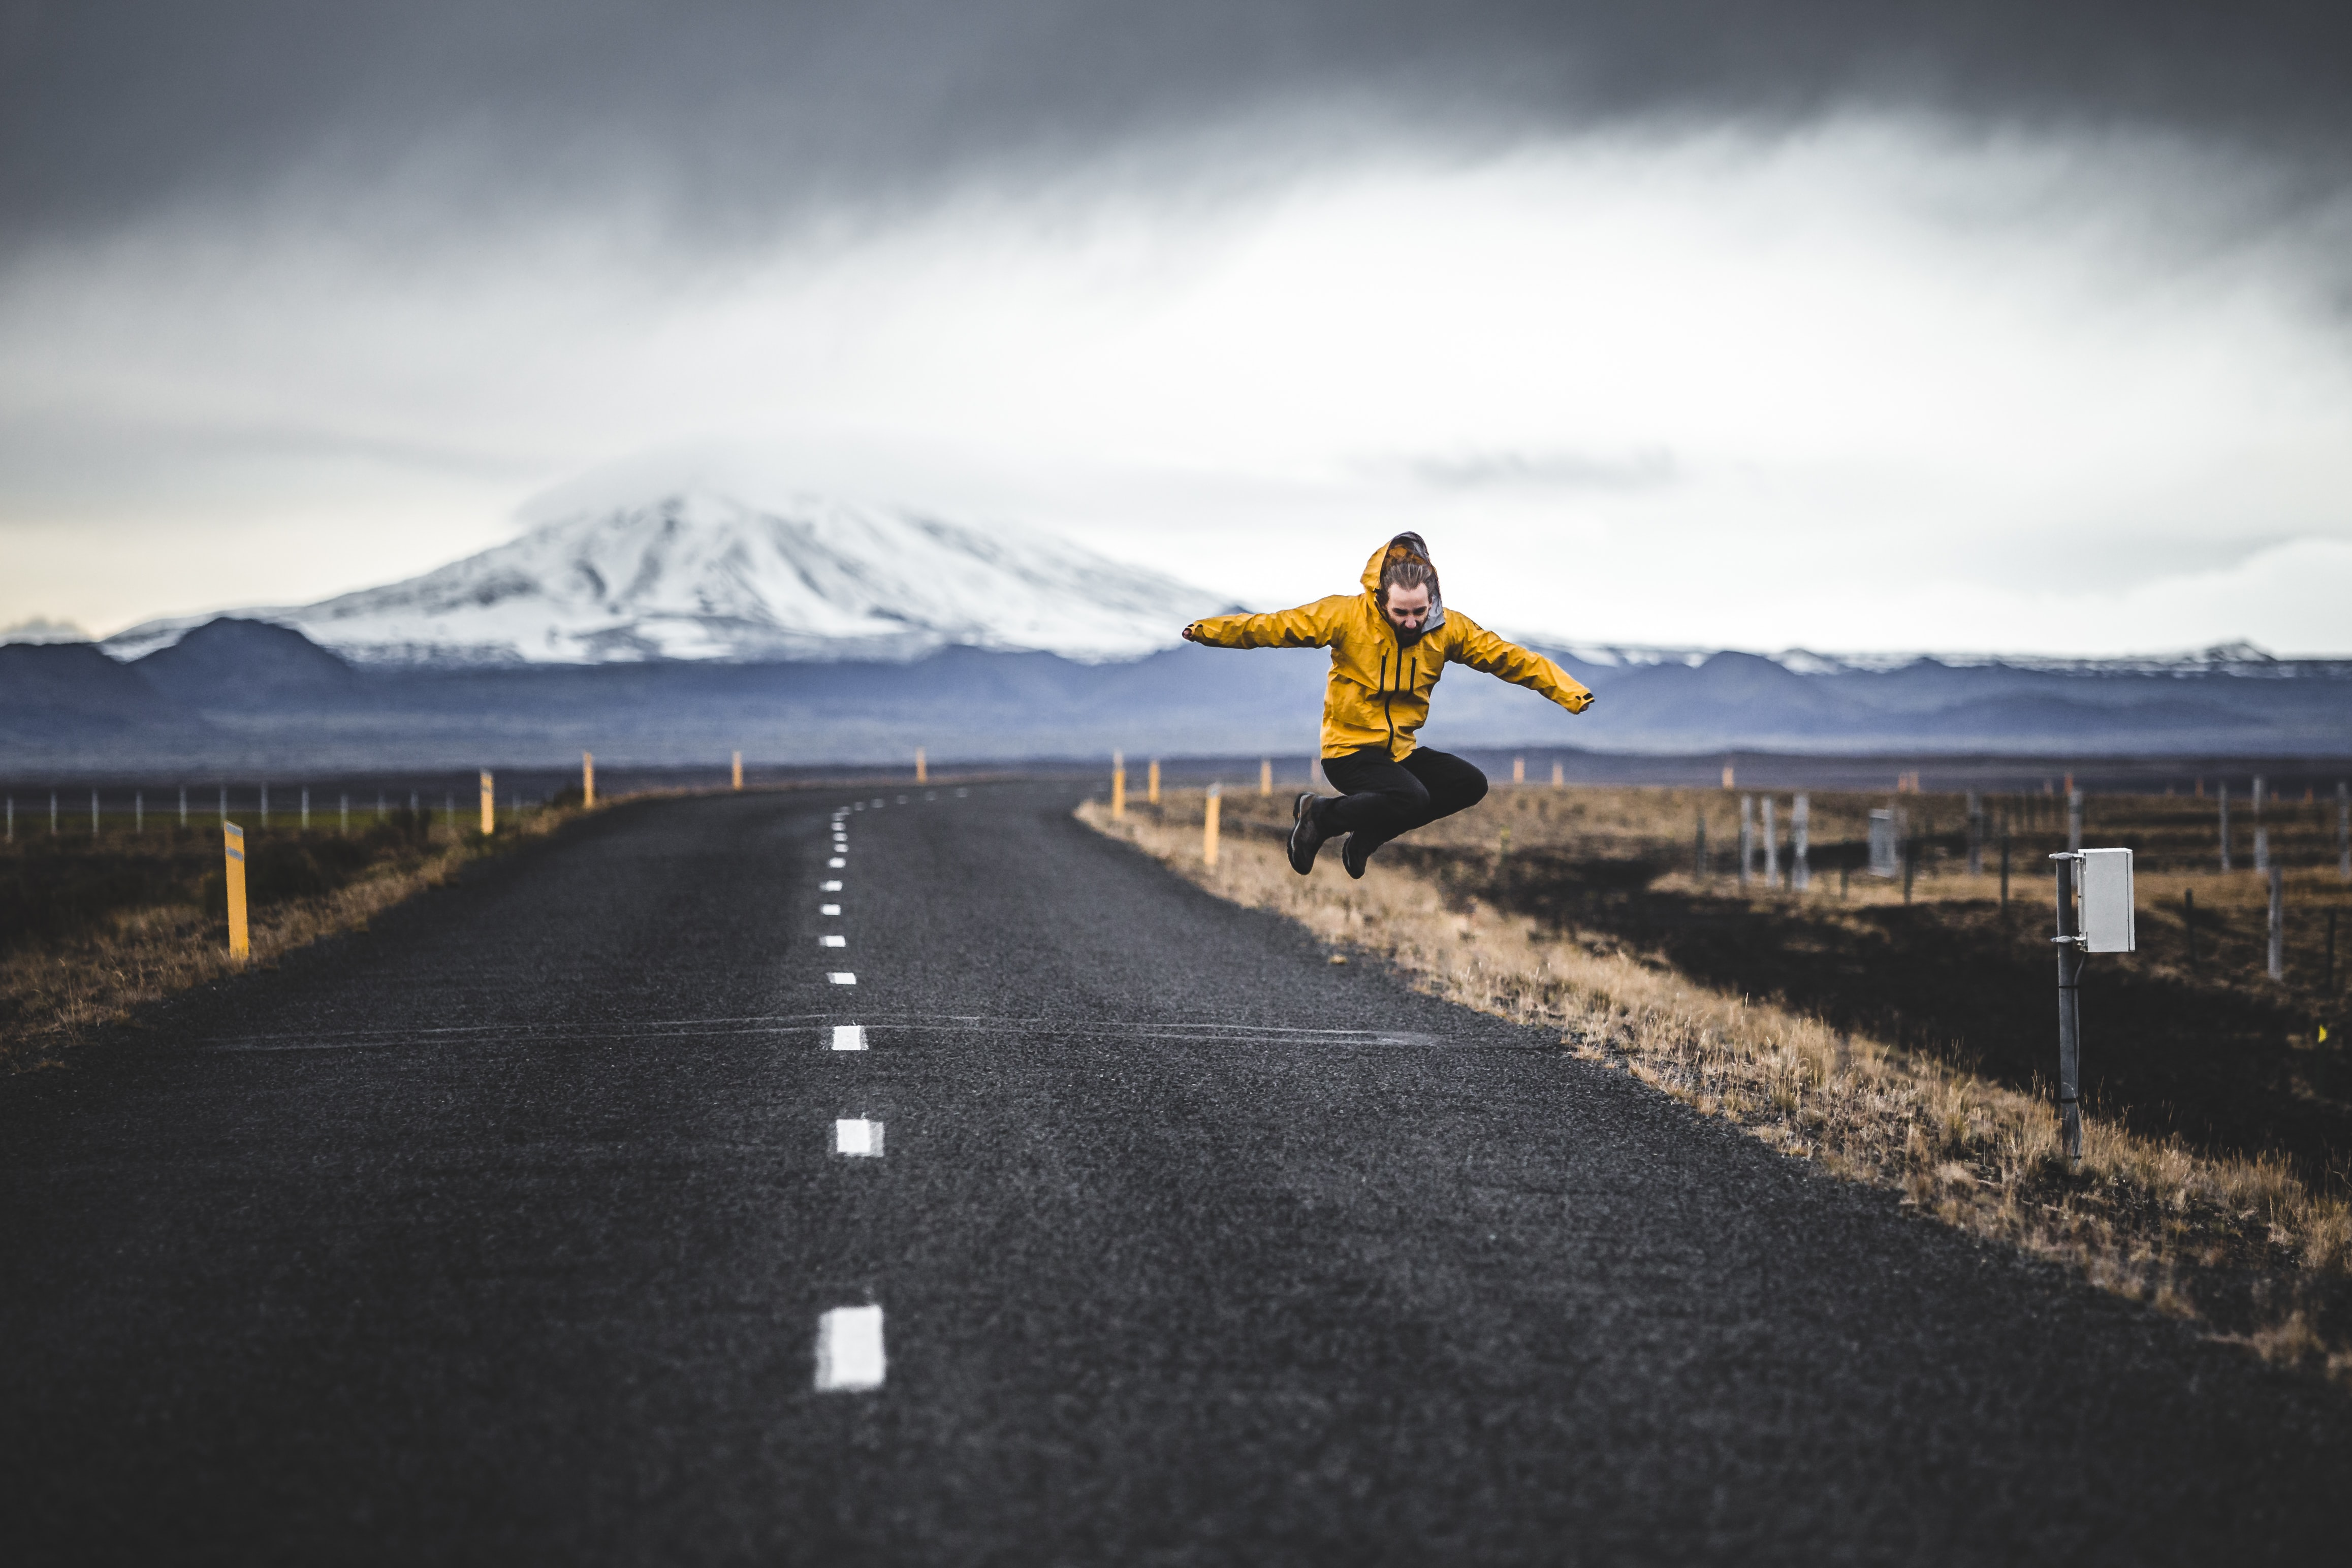 jump shot photo of man over road and mountain alps at distance